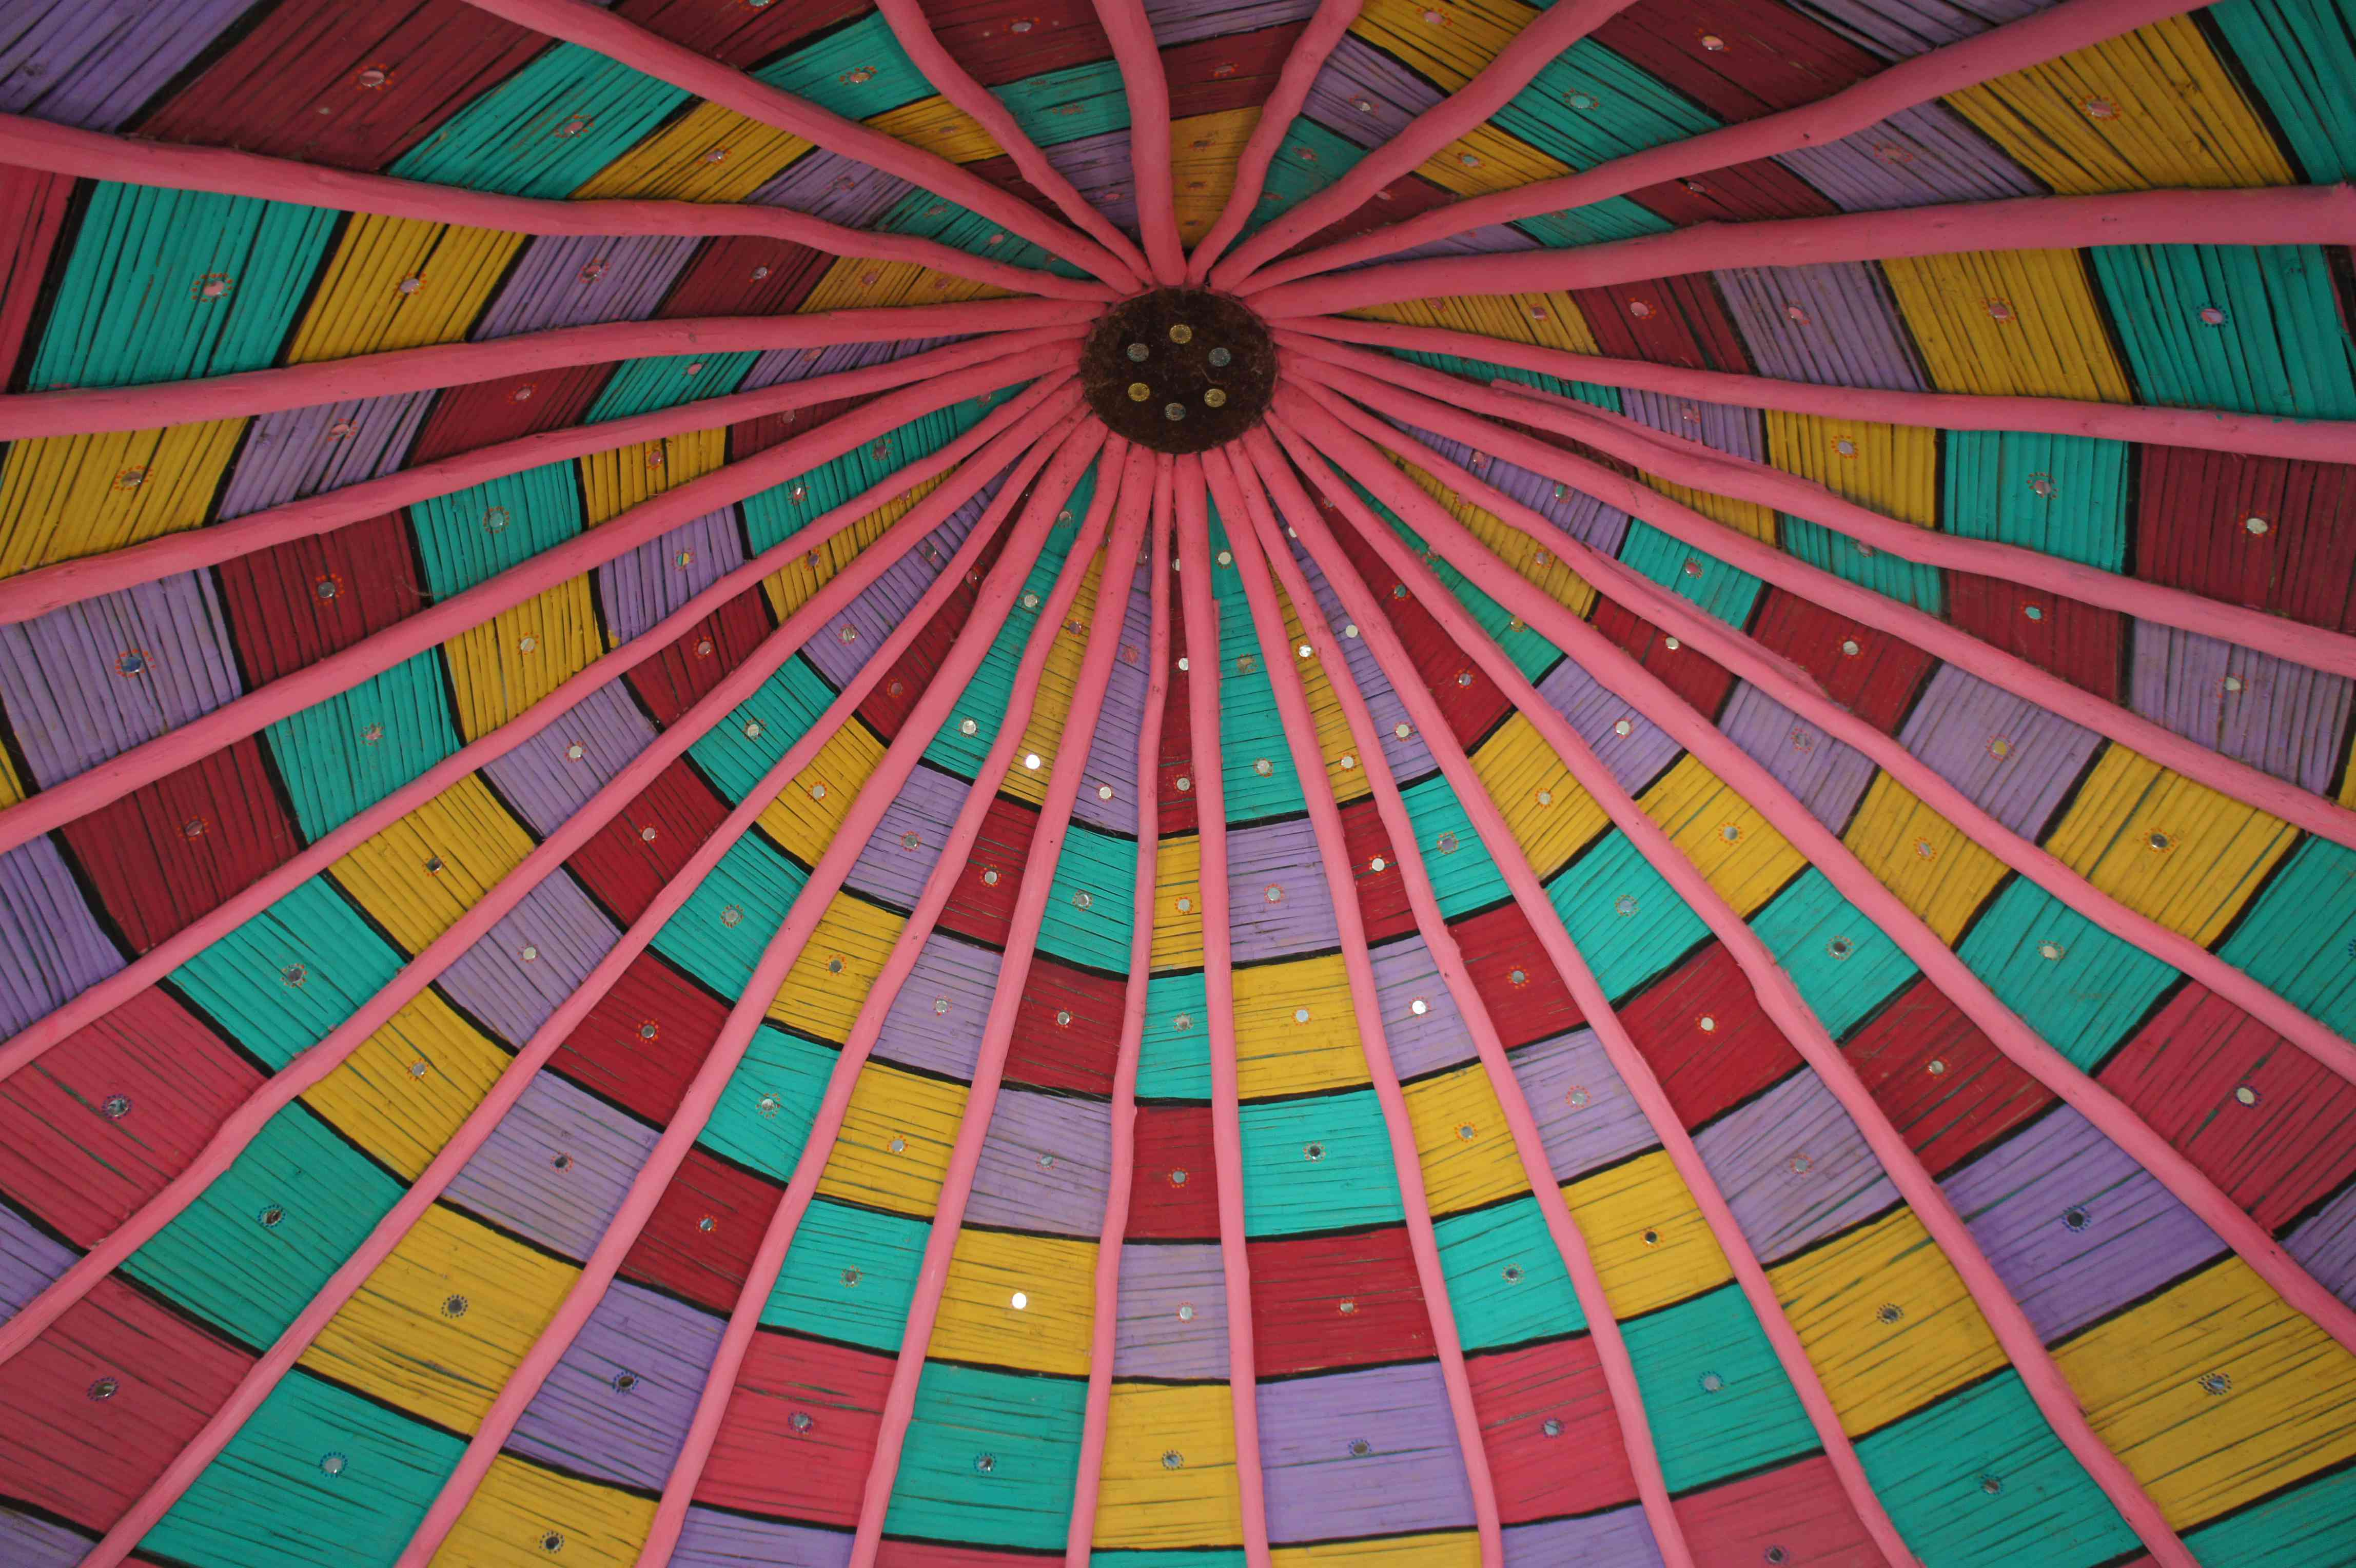 colorful hut ceiling with teal, red, yellow, and purple squares and pink support beams. Each square hass a small round mirror in ir